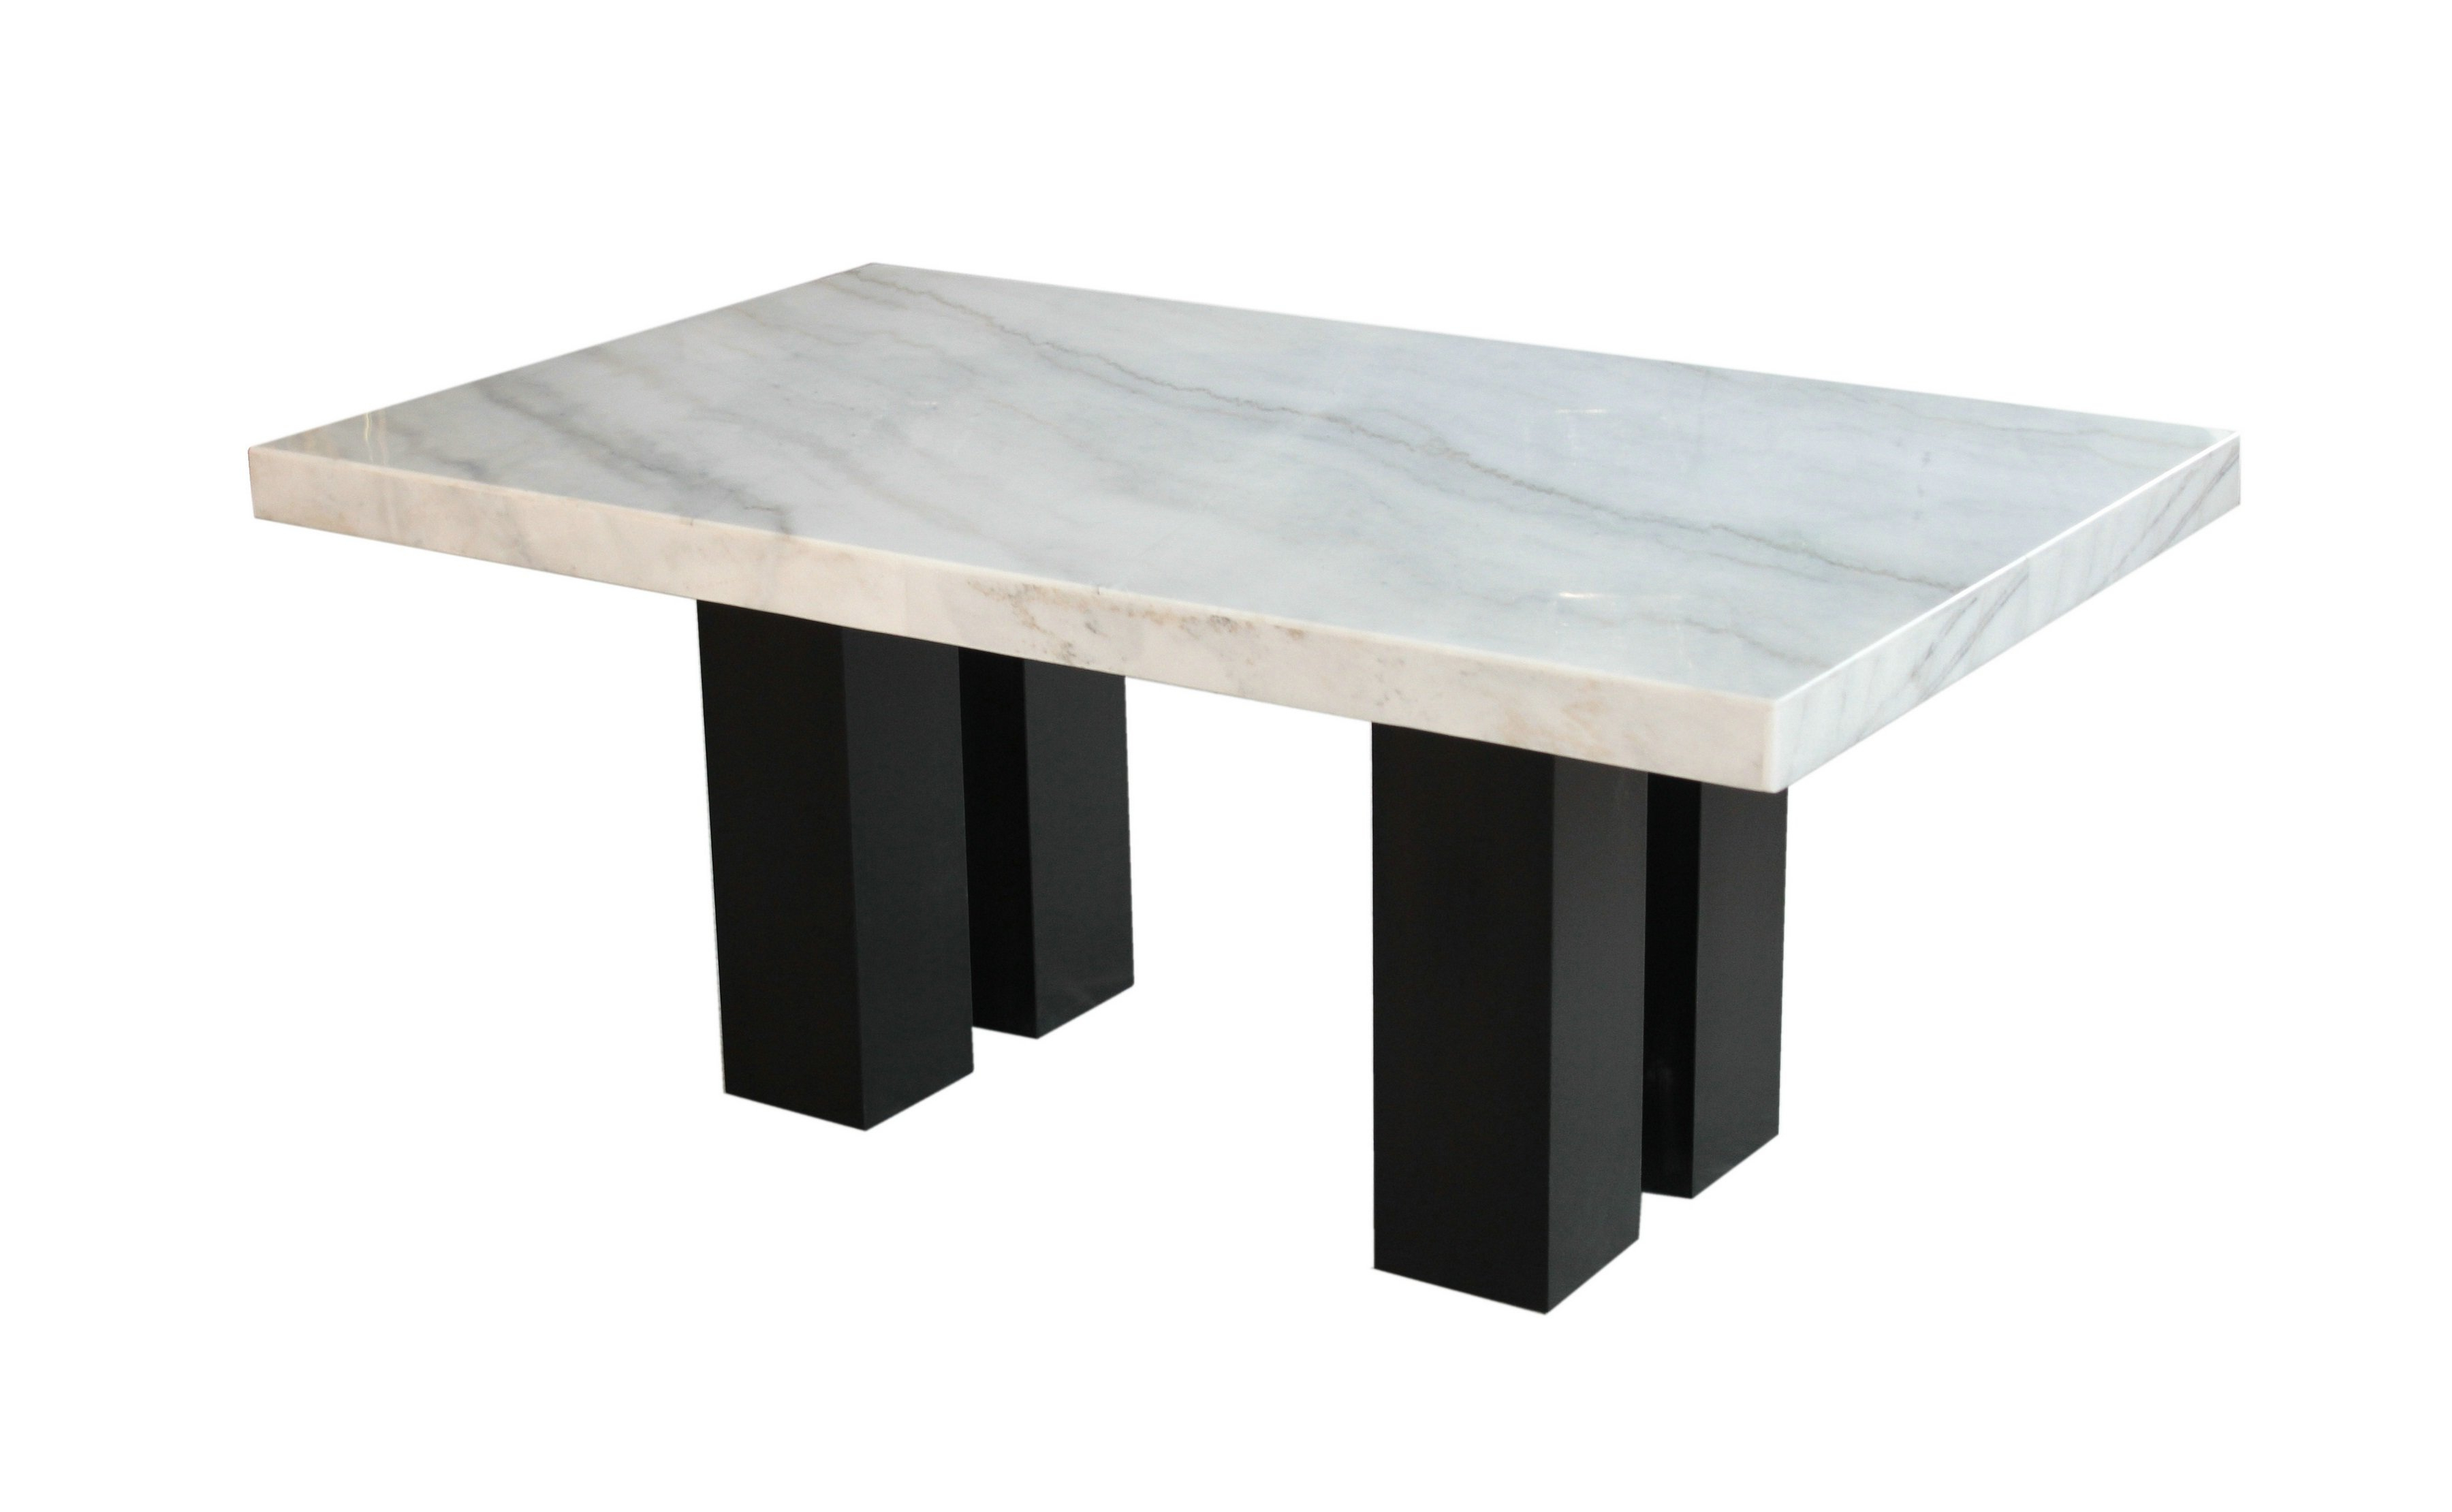 Cassian Dining Table For Fashionable Weatherholt Dining Tables (View 6 of 20)